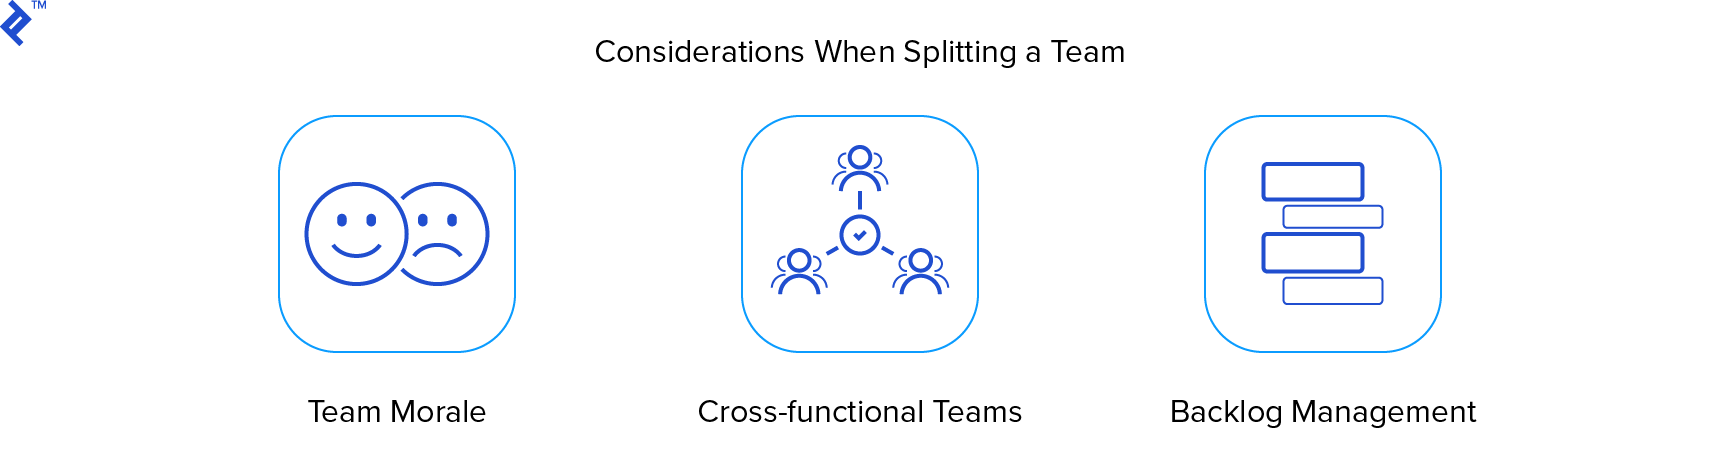 Considerations when splitting a team